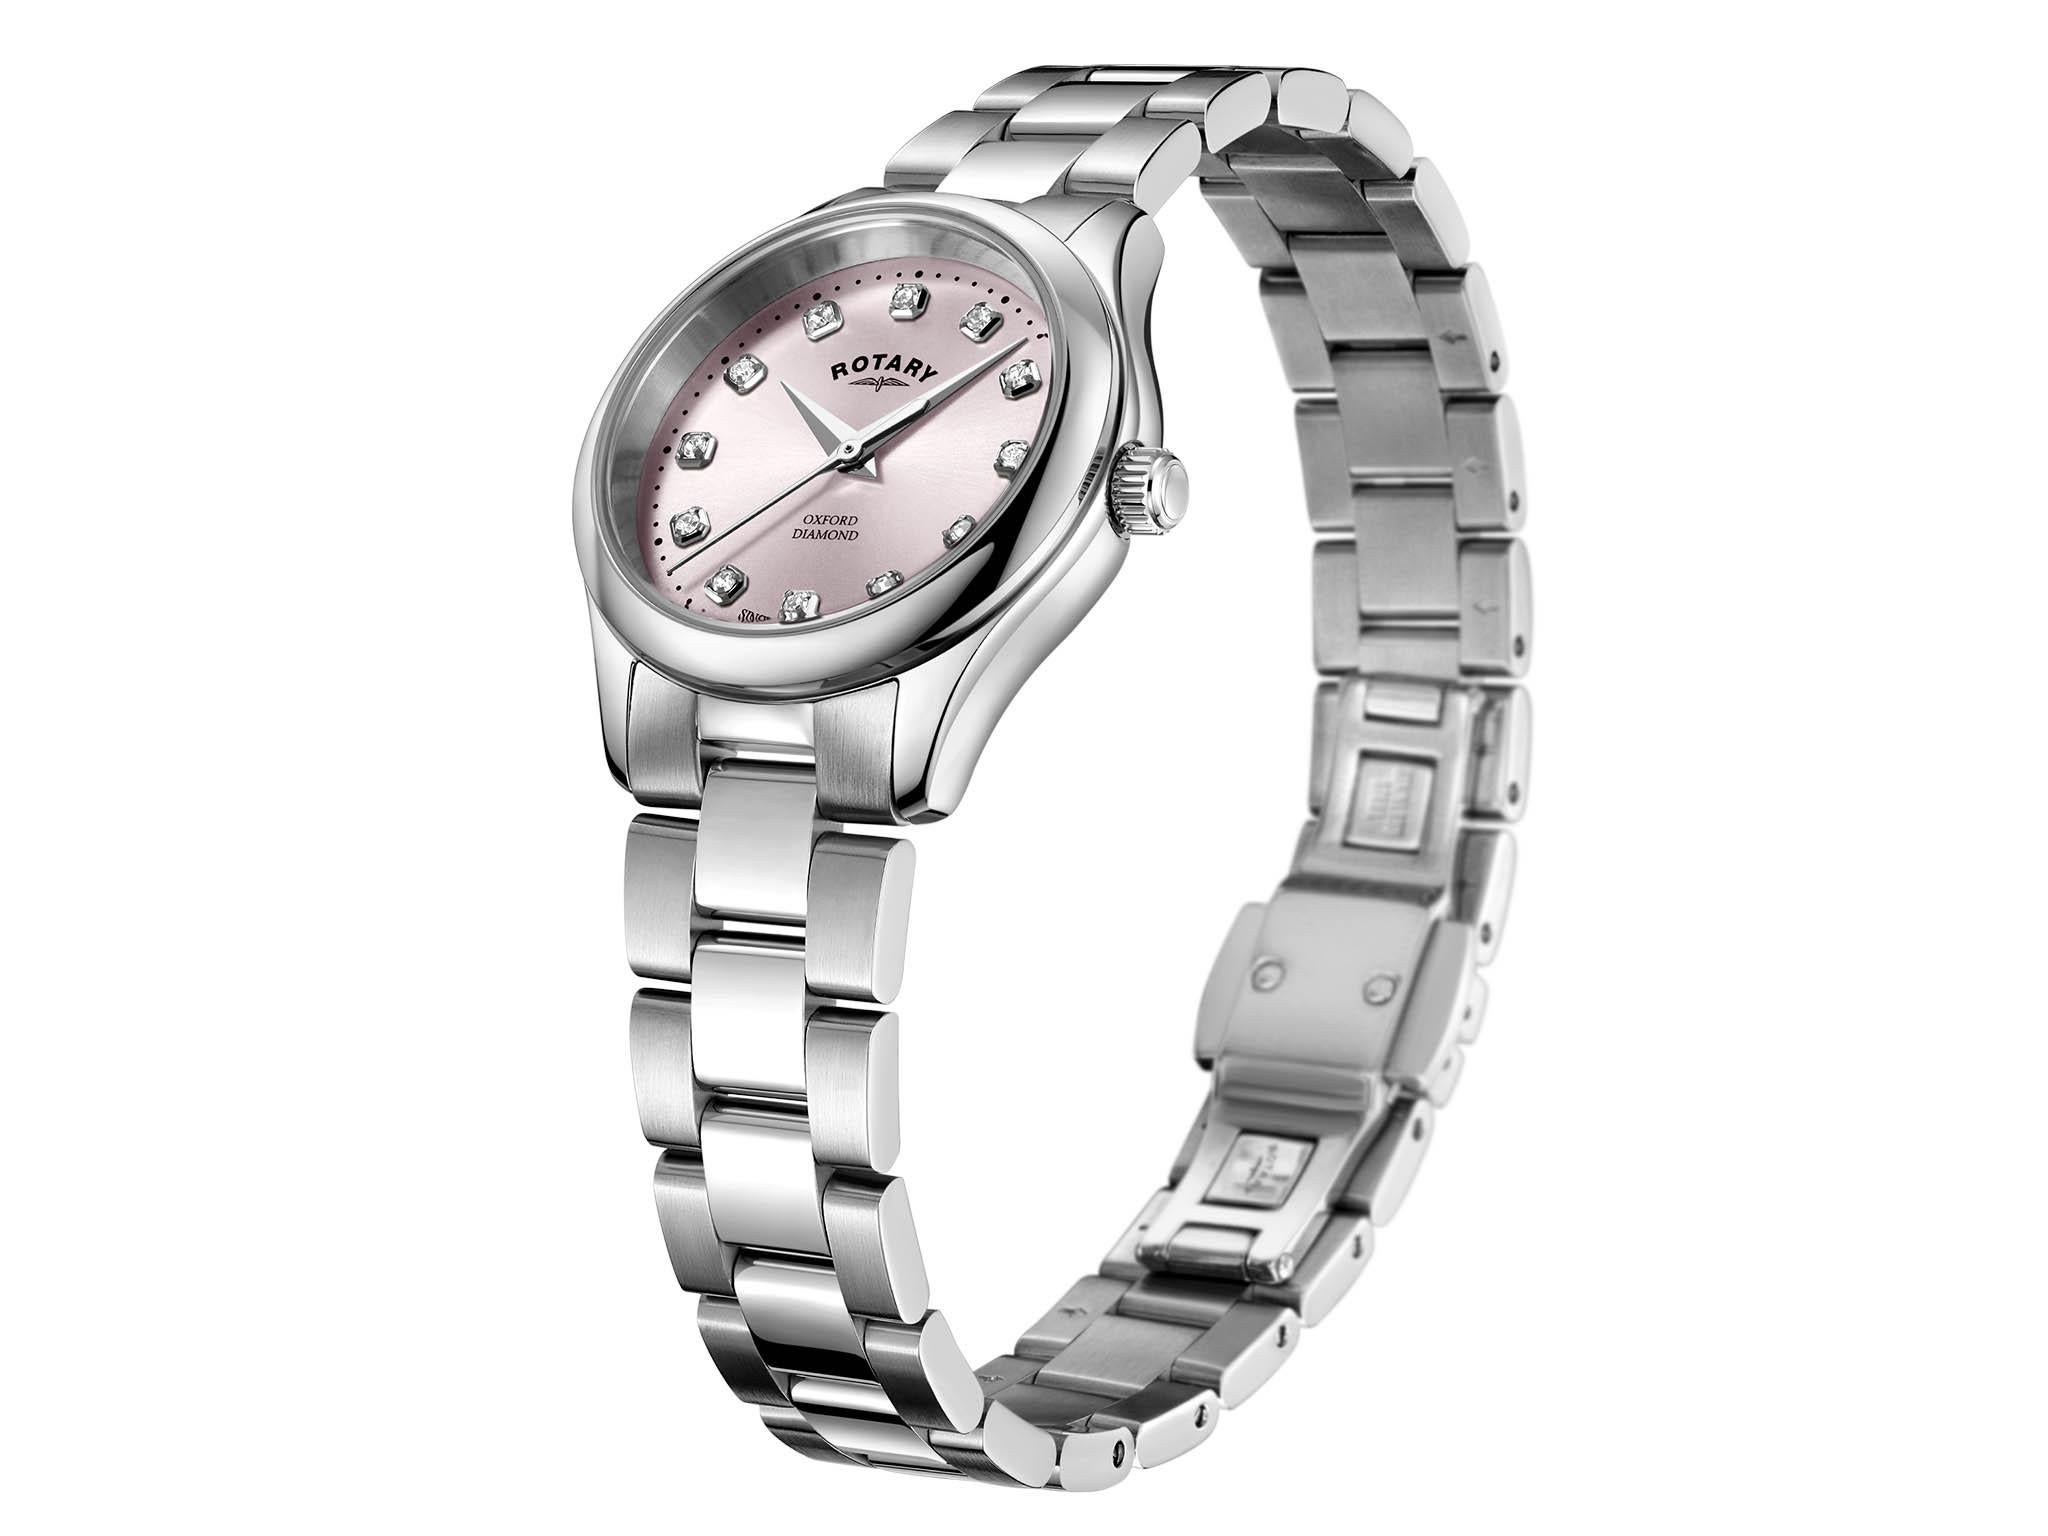 12 best watches for women | The Independent